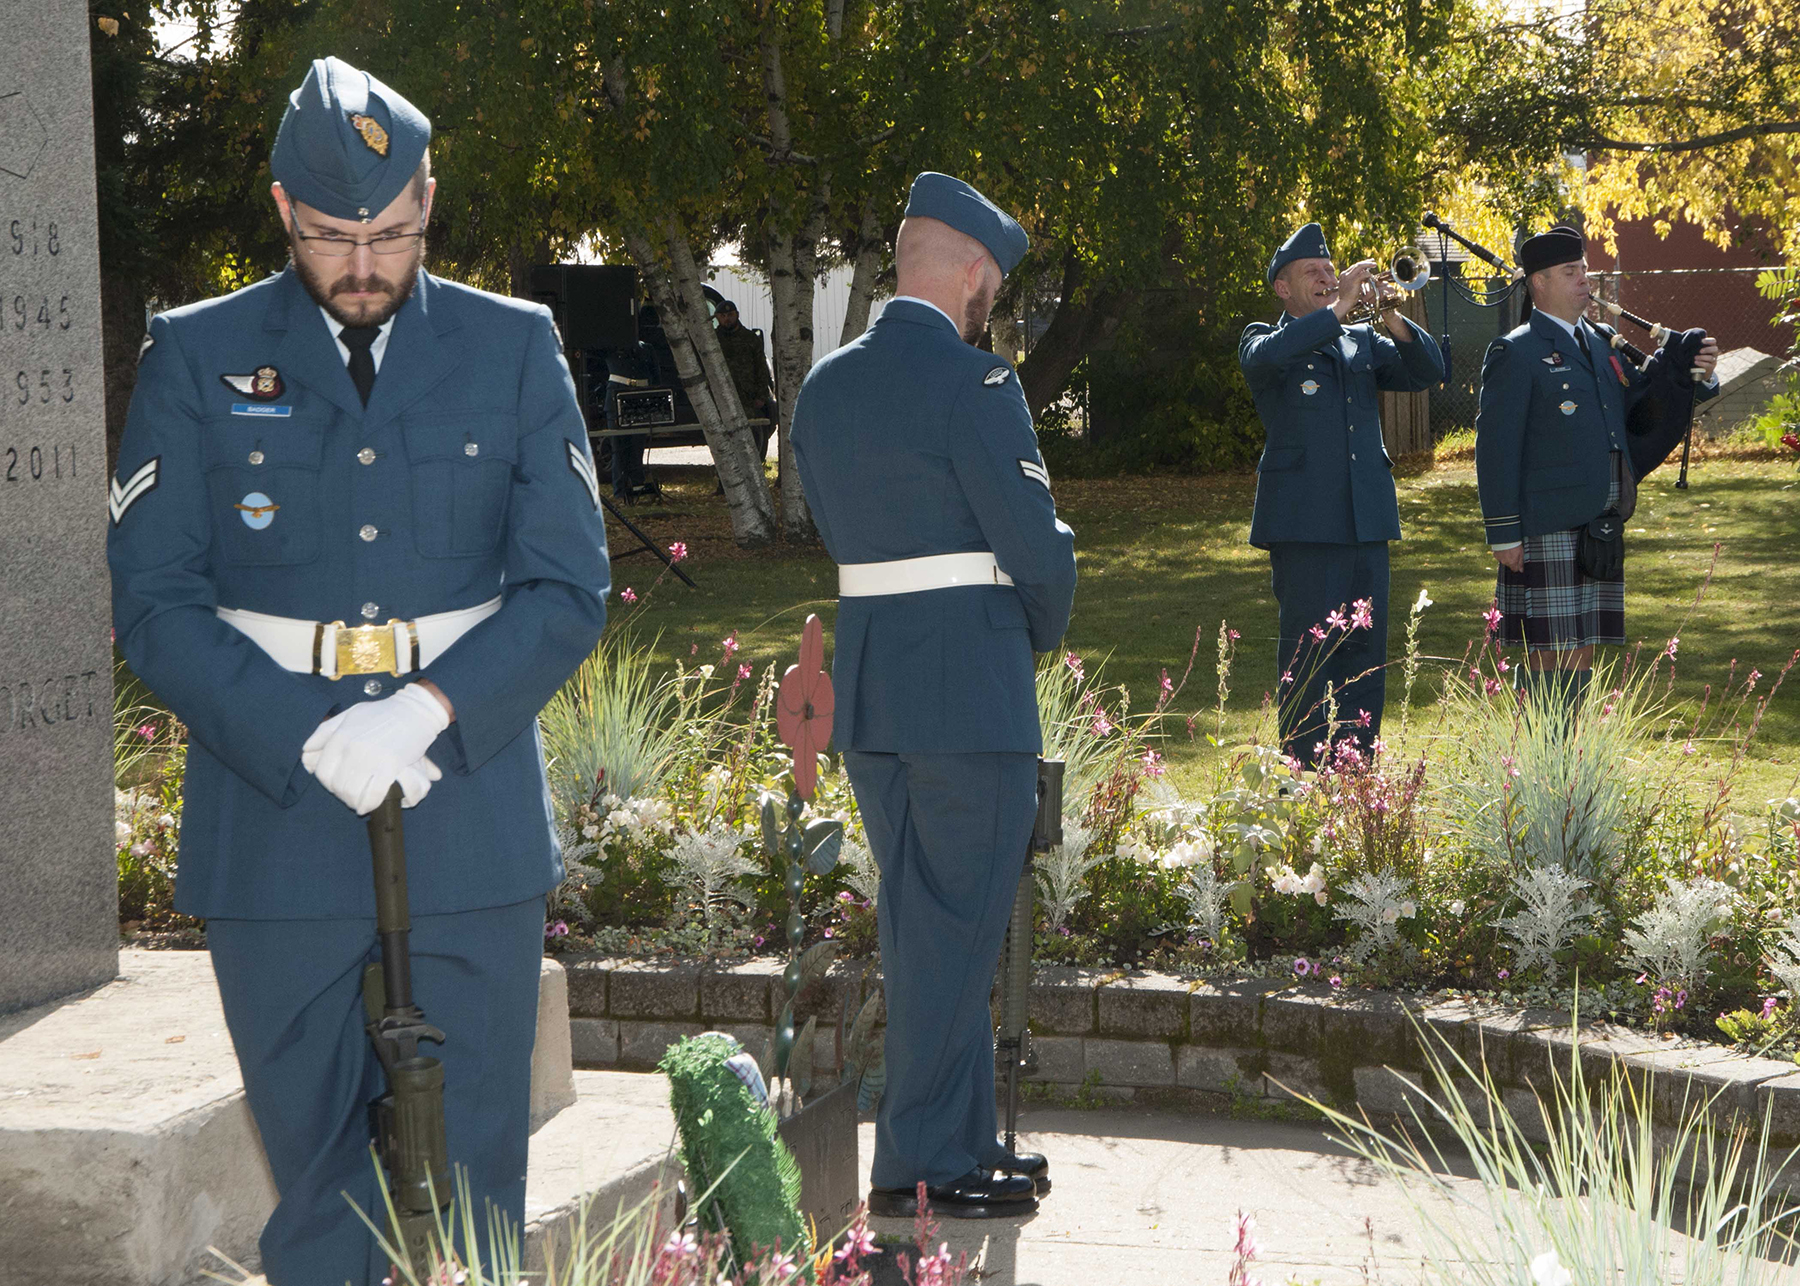 Corporal Kevin Badger and another member of the Royal Canadian Air Force stand sentry at the Cold Lake Legion cenotaph during the 4 Wing Cold Lake, Alberta, ceremony remembering the Battle of Britain on Sunday, 15 September 2019. PHOTO: Master Corporal Shane Rudderham, CK06-2019-0753-030